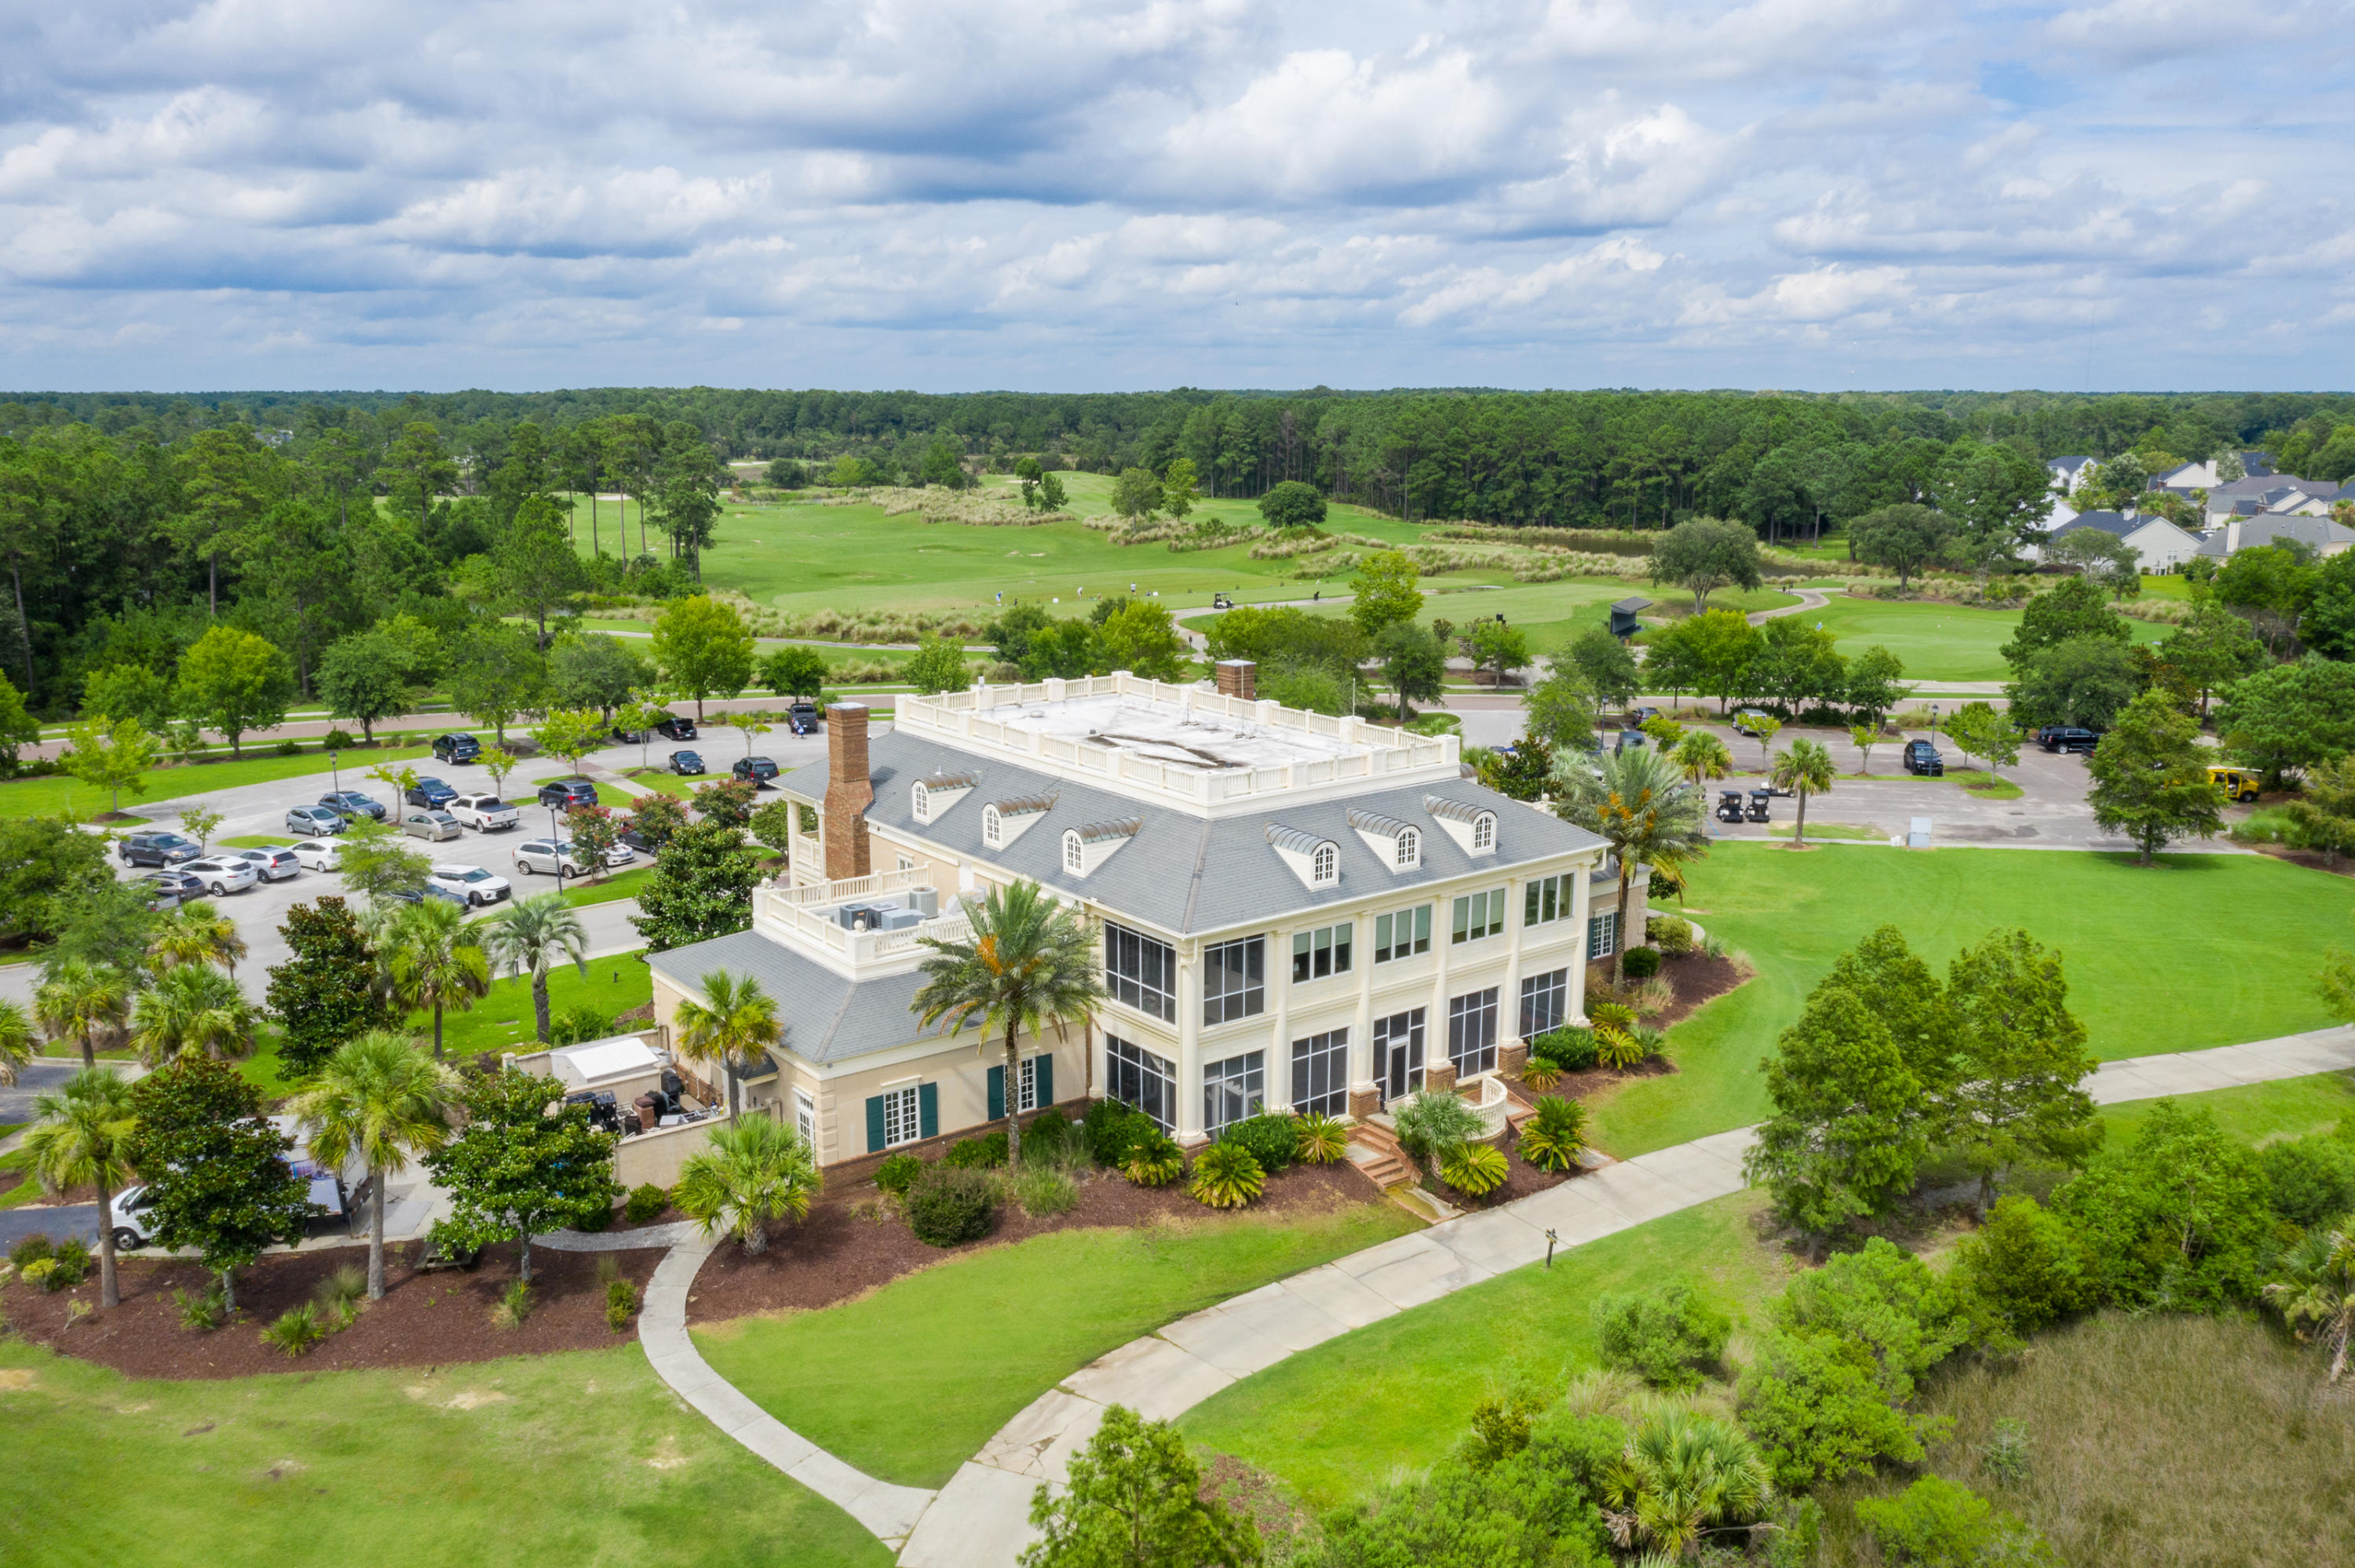 Rivertowne Country Club Homes For Sale - 1725 Rivertowne Country Club, Mount Pleasant, SC - 56